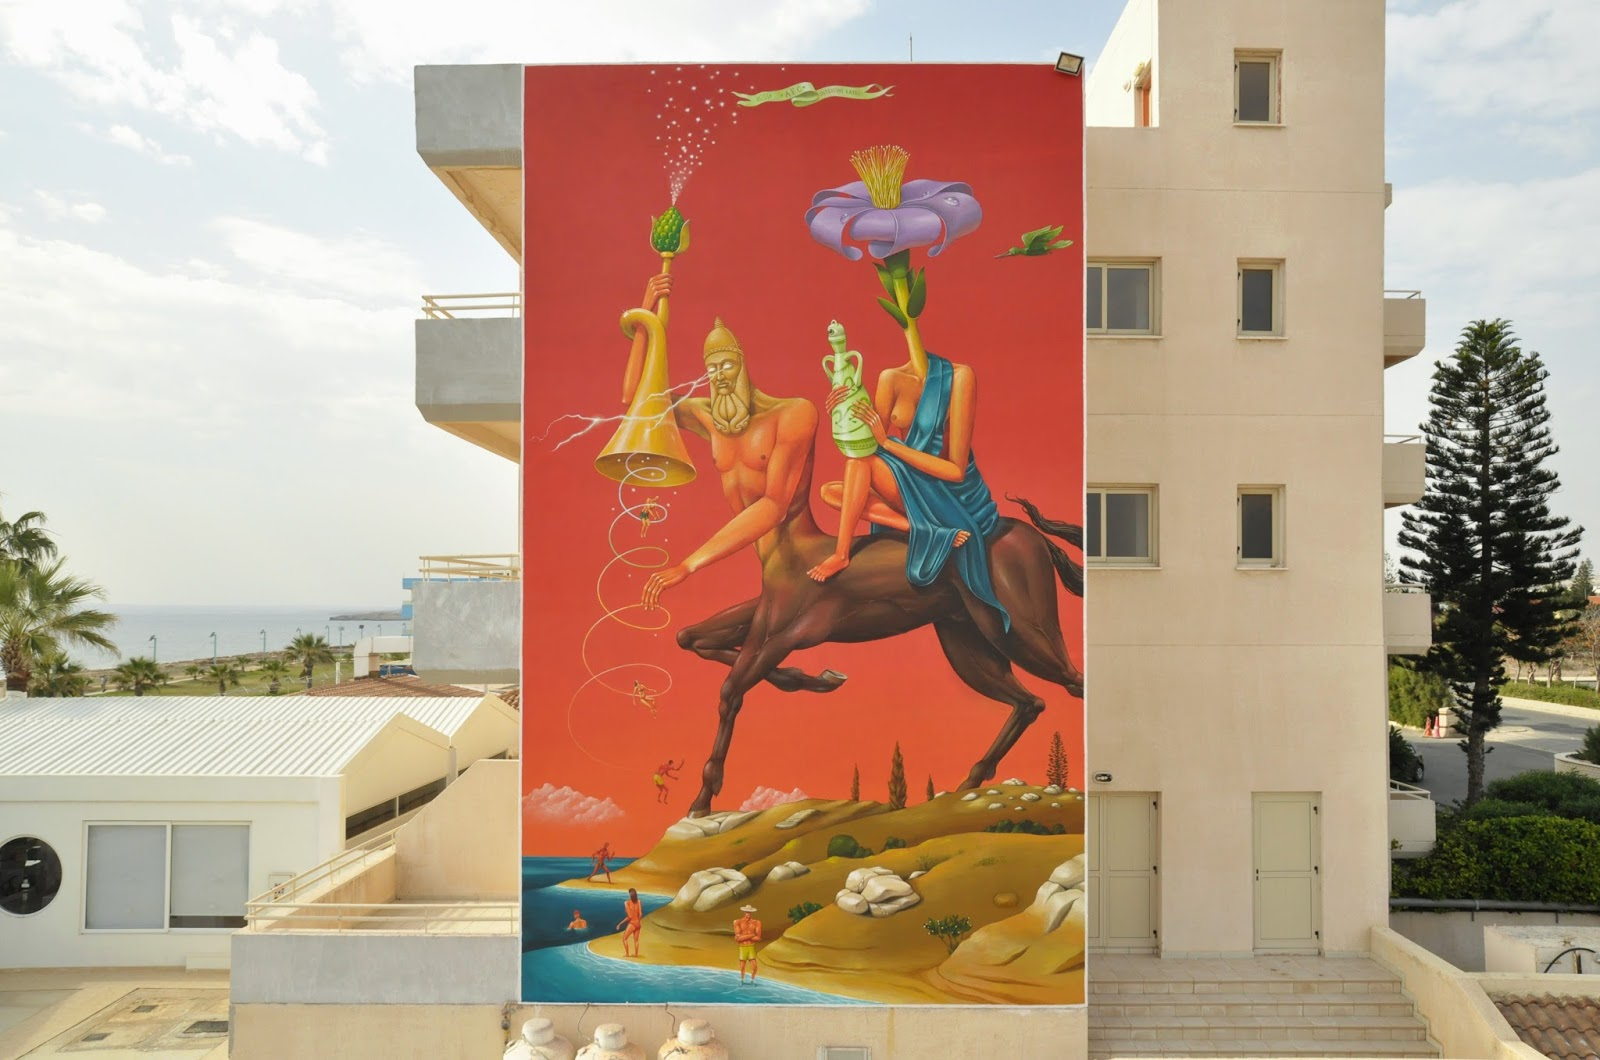 interesni-kazki-new-mural-in-ayia-napa-cyprus-13